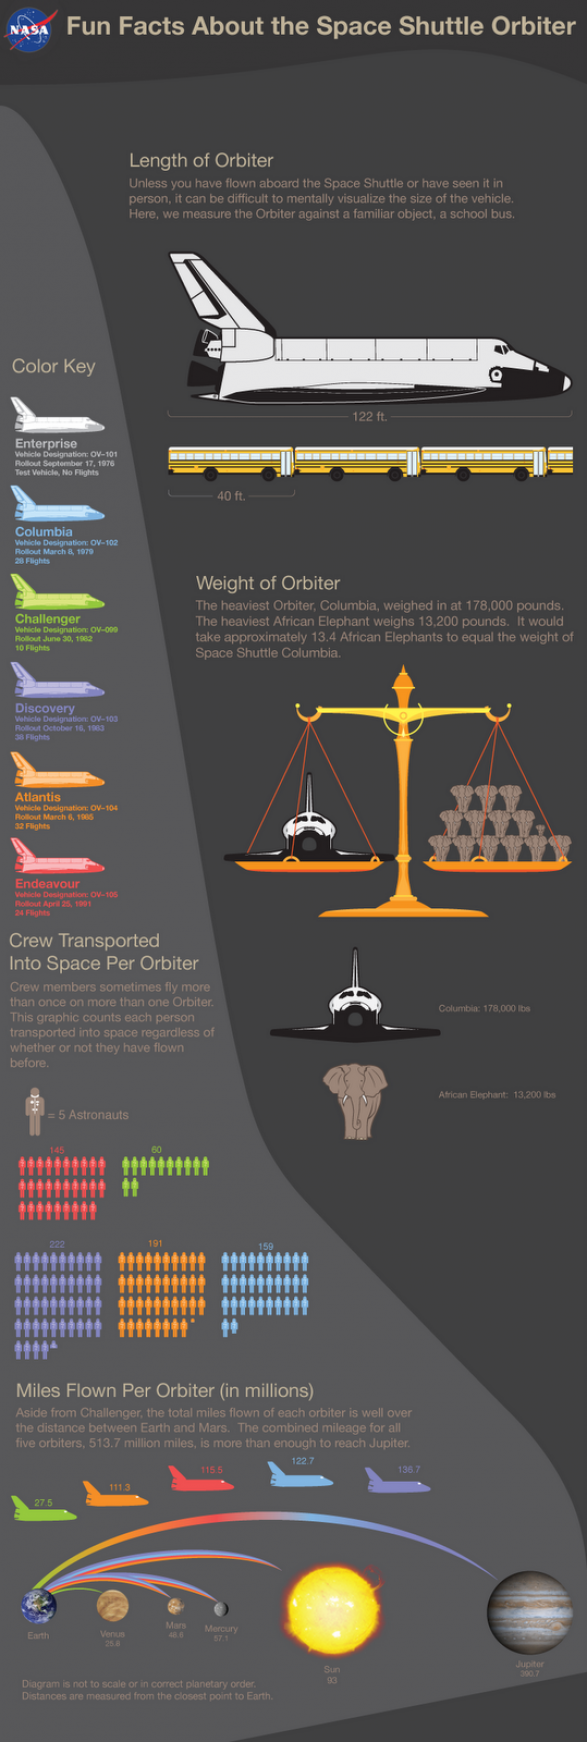 Fun Facts about the Space Shuttle Orbiter